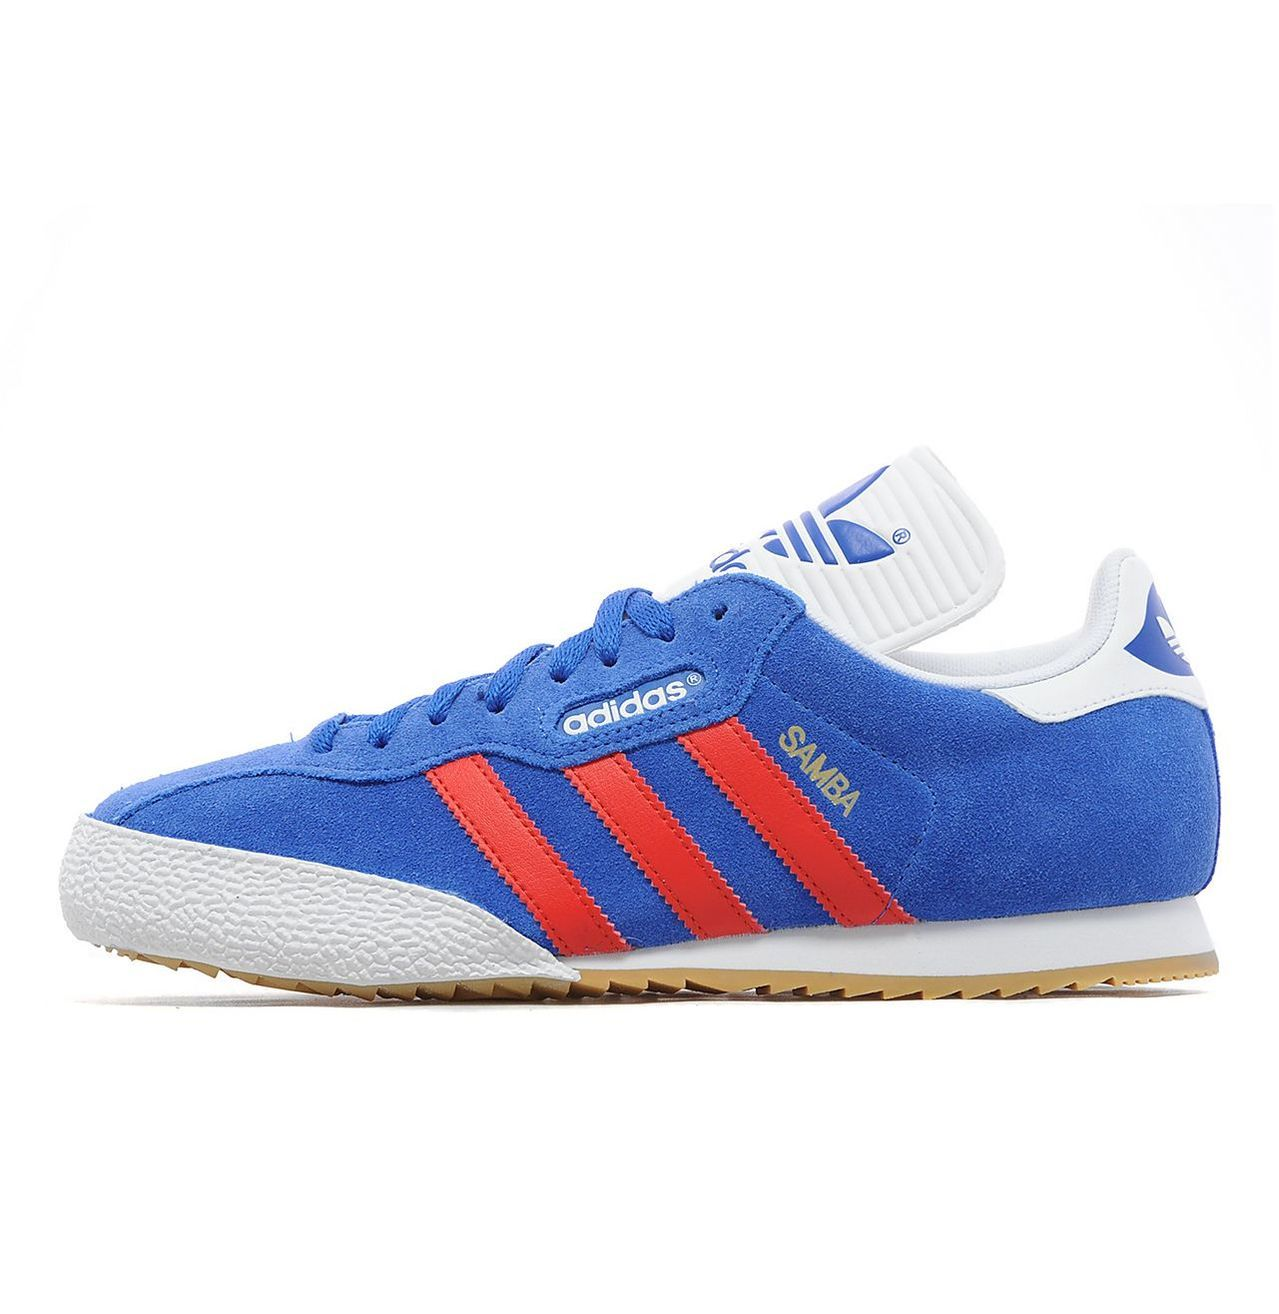 big sale 47185 9fa2b Adidas Samba Super - Satellite Blue   Red   White